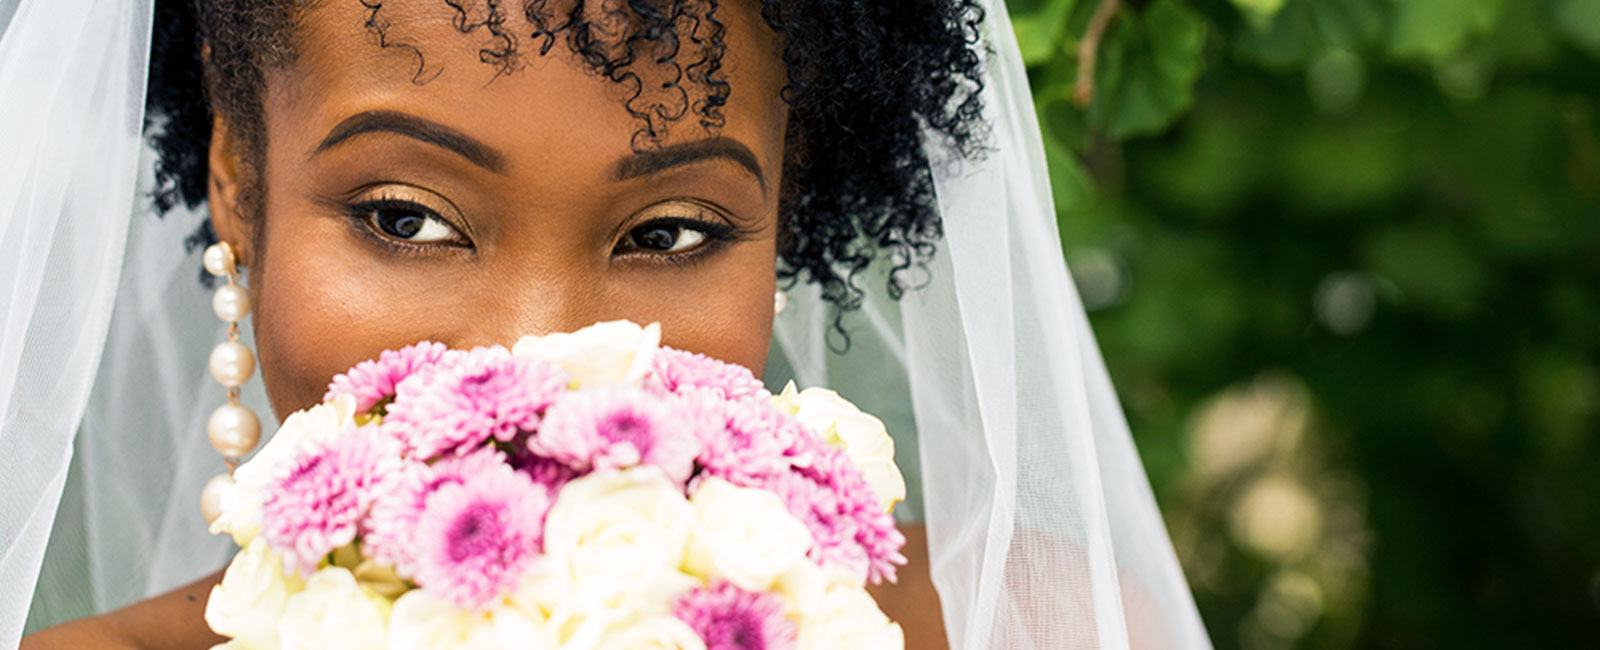 Bride sniffing a bouquet on her wedding day